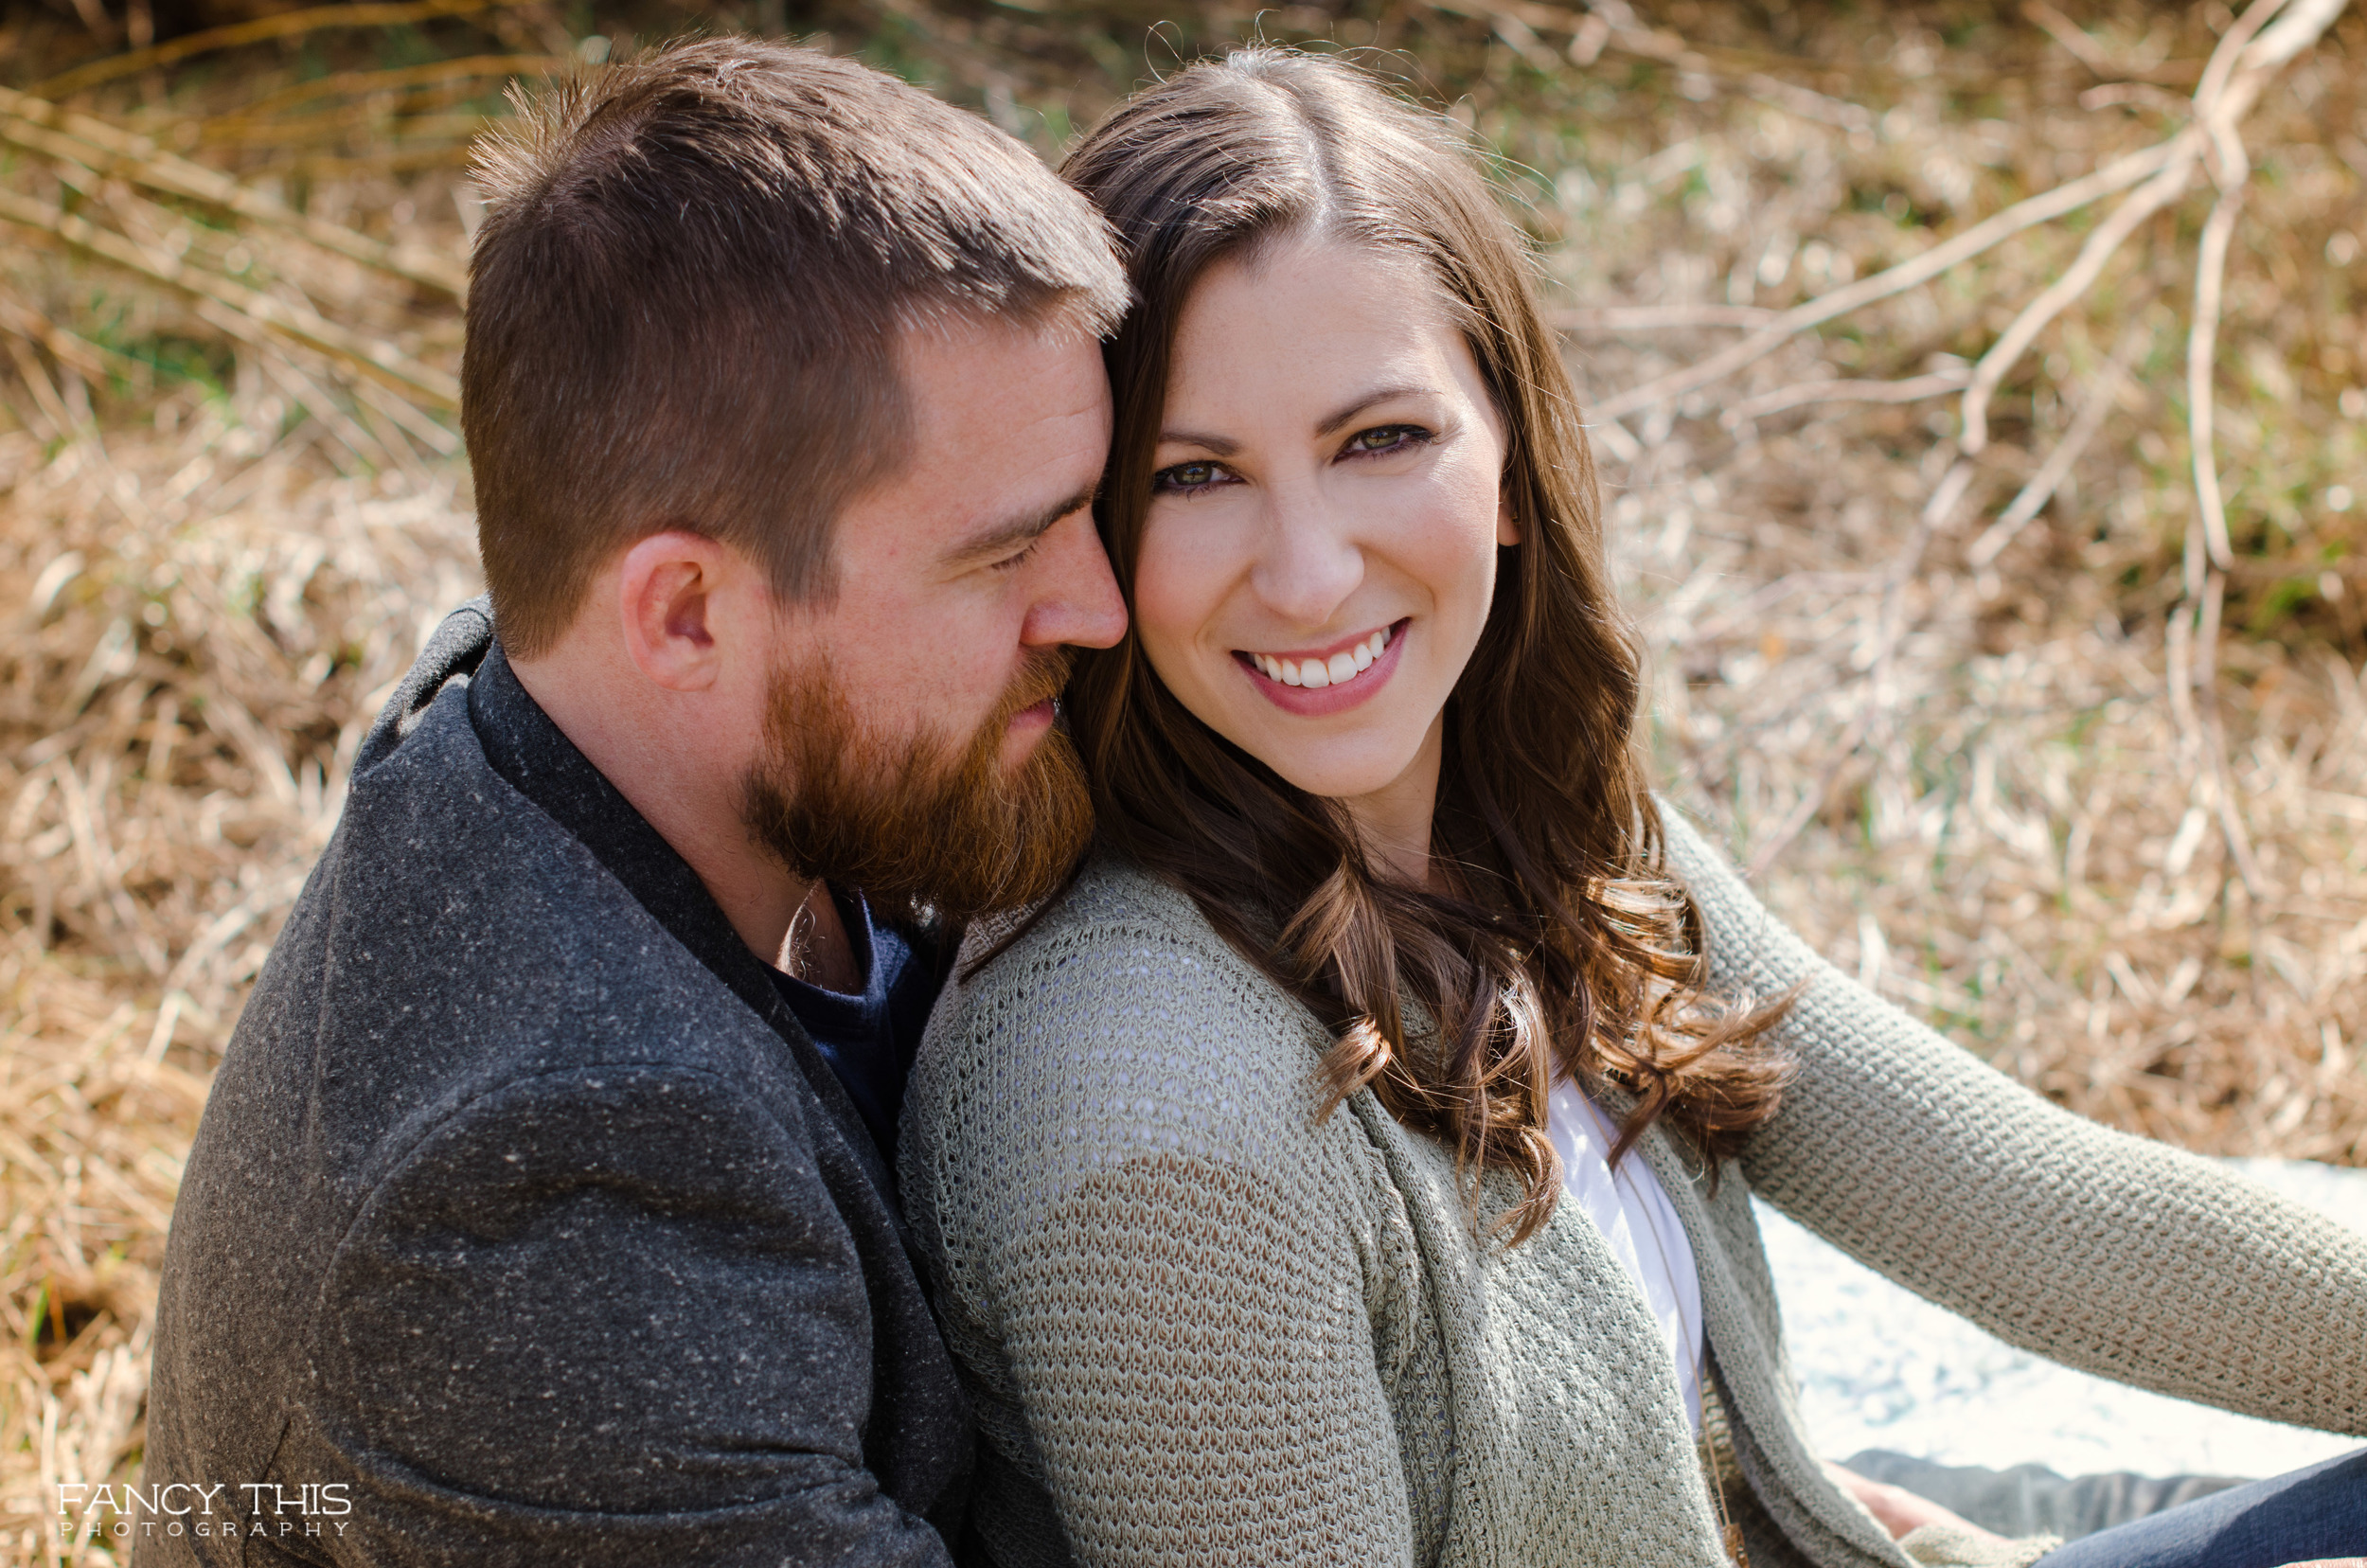 garrett_diana_engagement (21 of 130).jpg